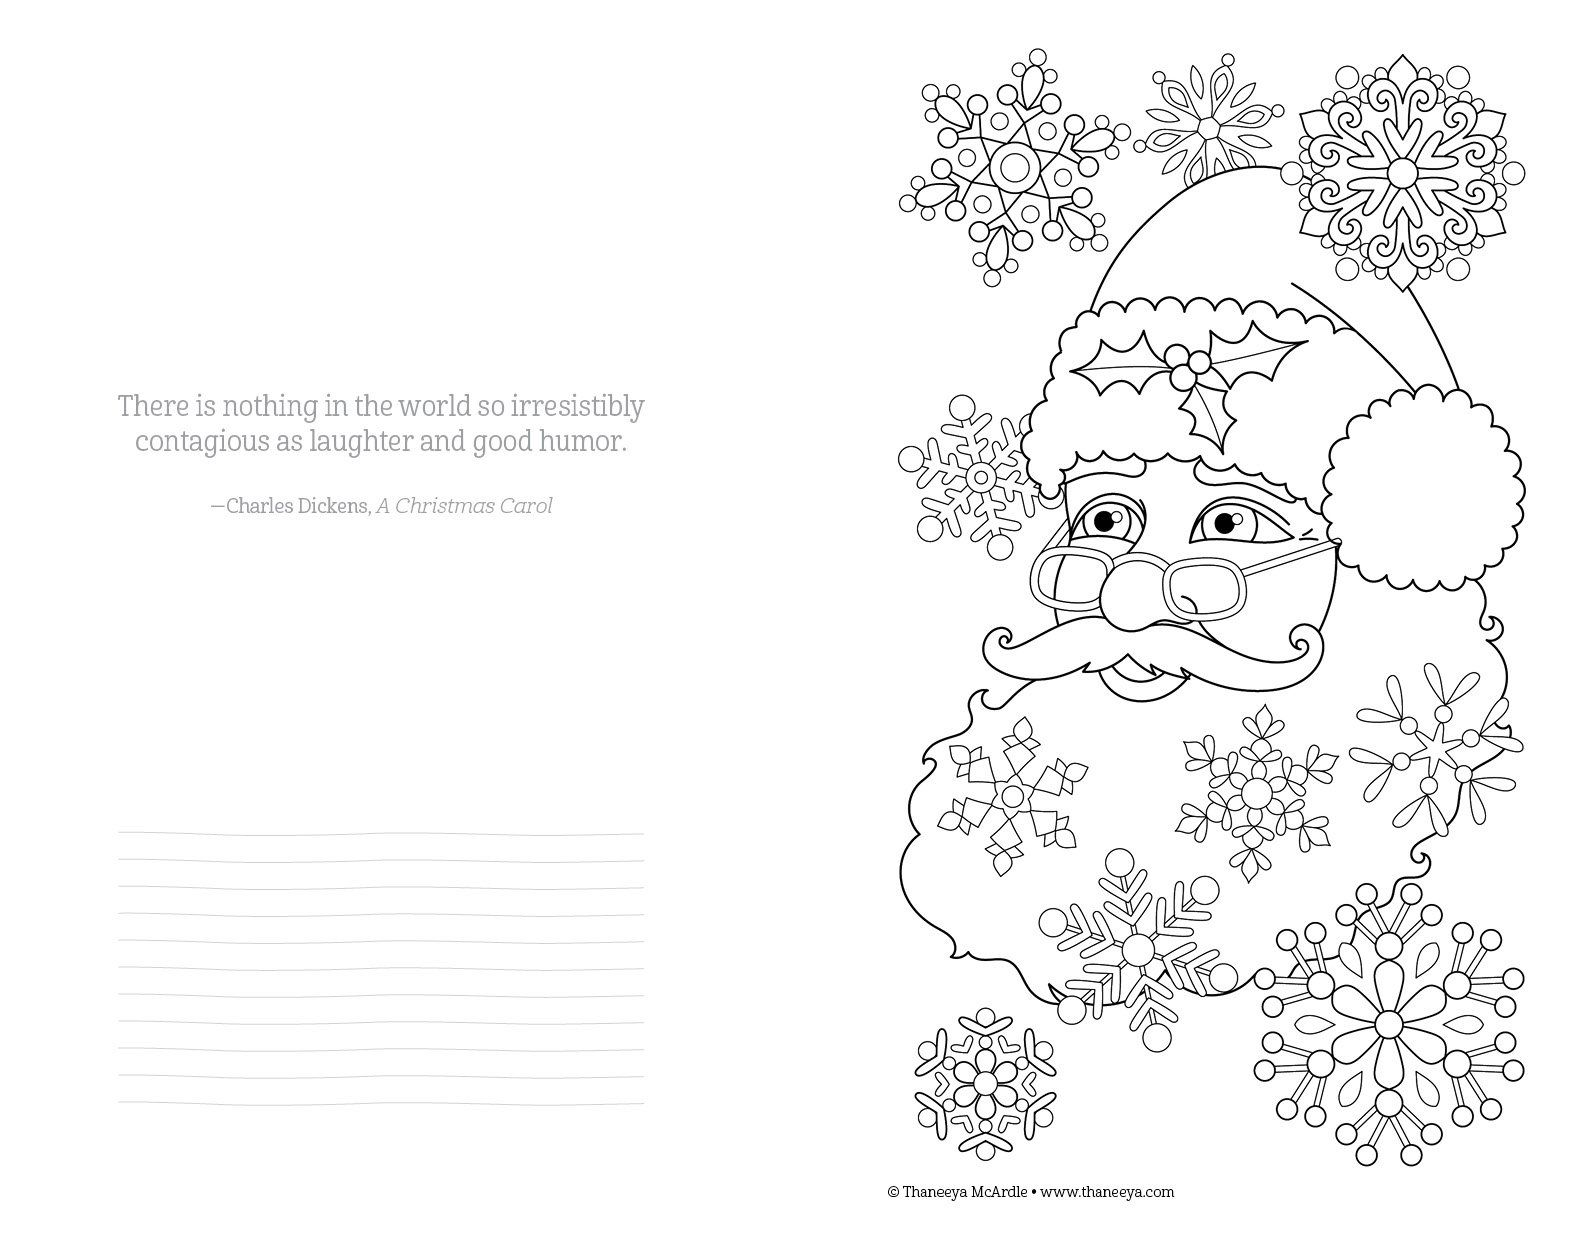 Color Christmas Coloring Book Perfectly Portable Pages On The Go Thaneeya